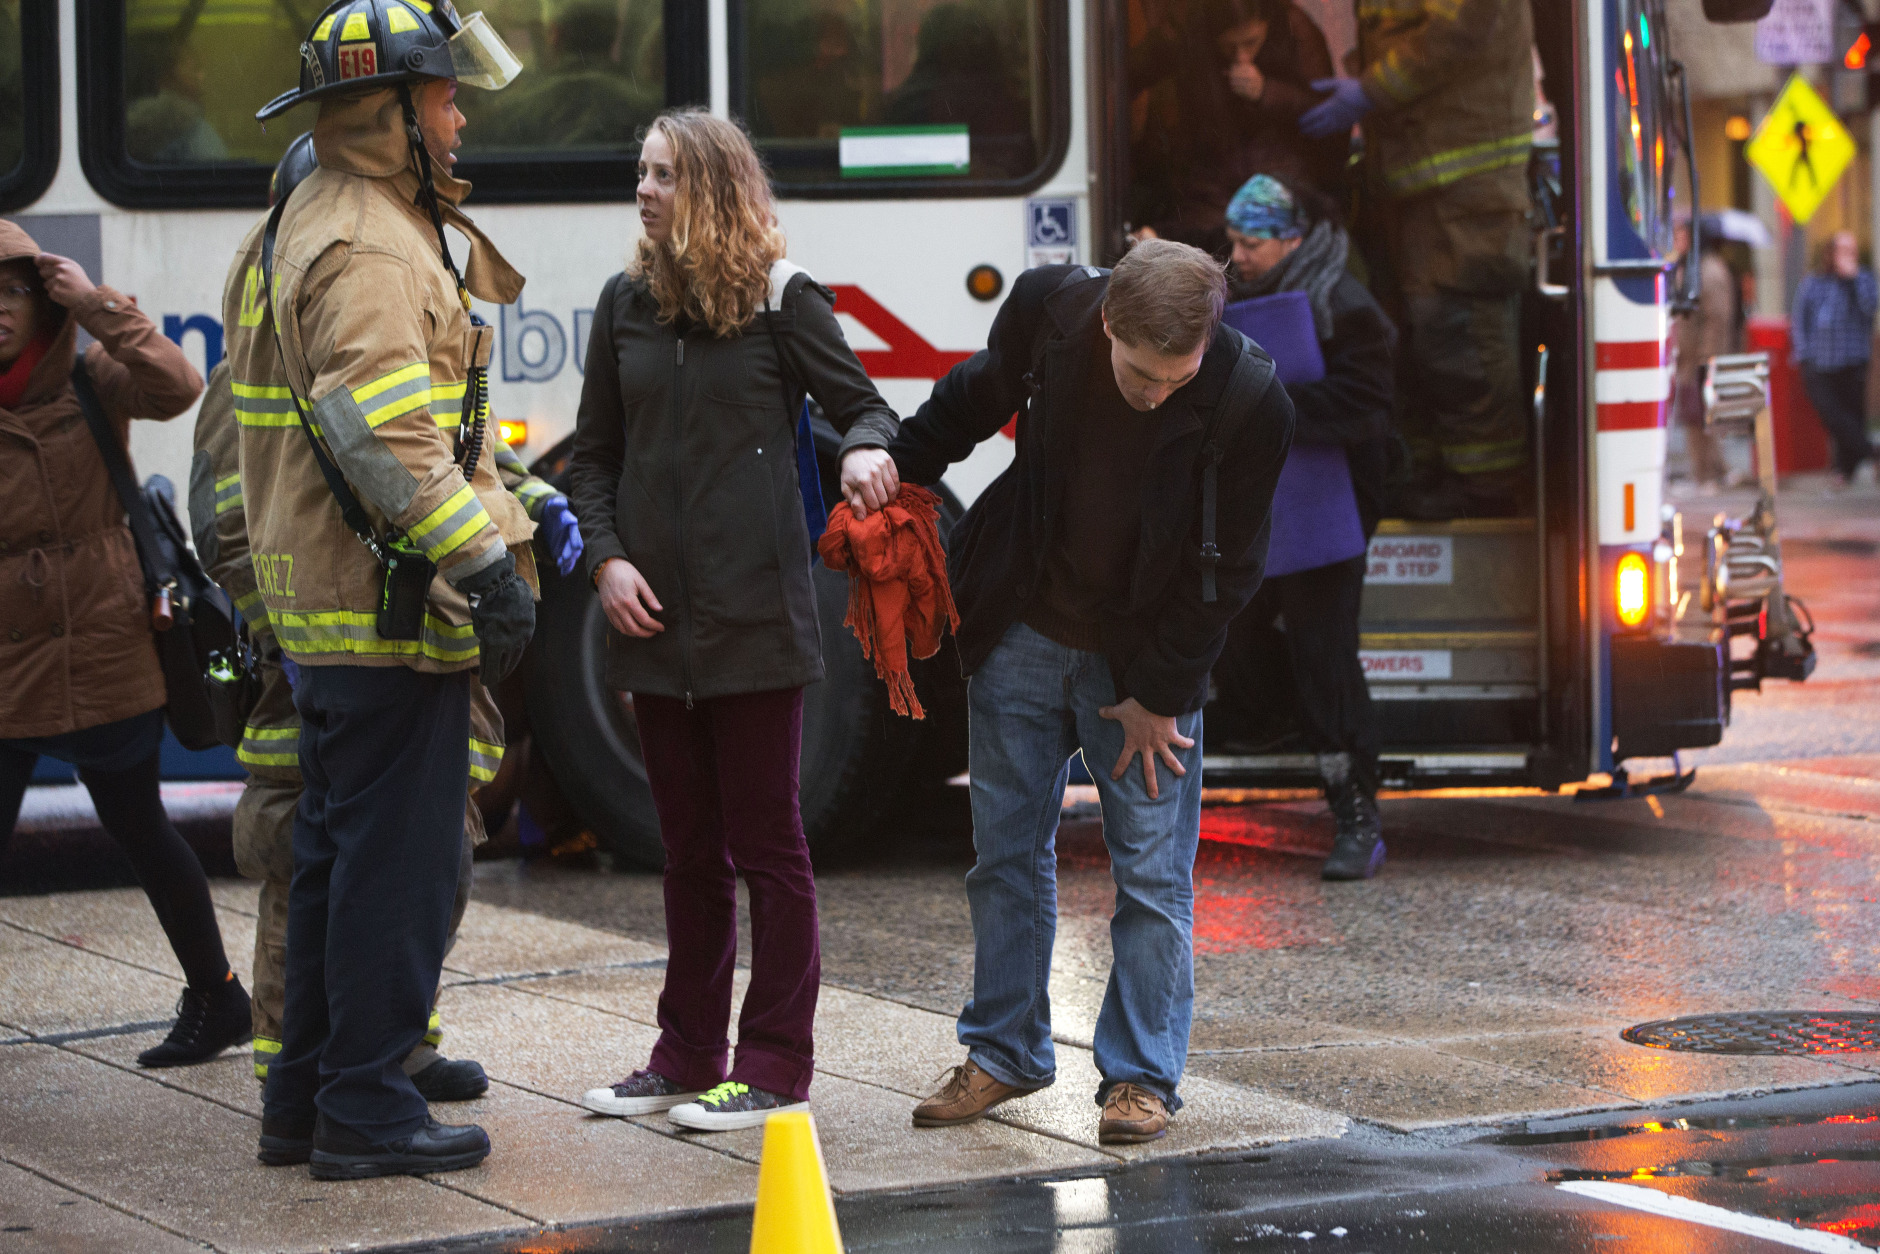 A couple holds hands as the man coughs while speaking with a firefighter after people were evacuated from a smoke filled Metro subway tunnel in Washington, Monday, Jan. 12, 2015. Metro officials say one of the busiest stations in downtown Washington has been evacuated because of smoke.  Authorities say the source of the smoke is unknown.   (AP Photo/Jacquelyn Martin)